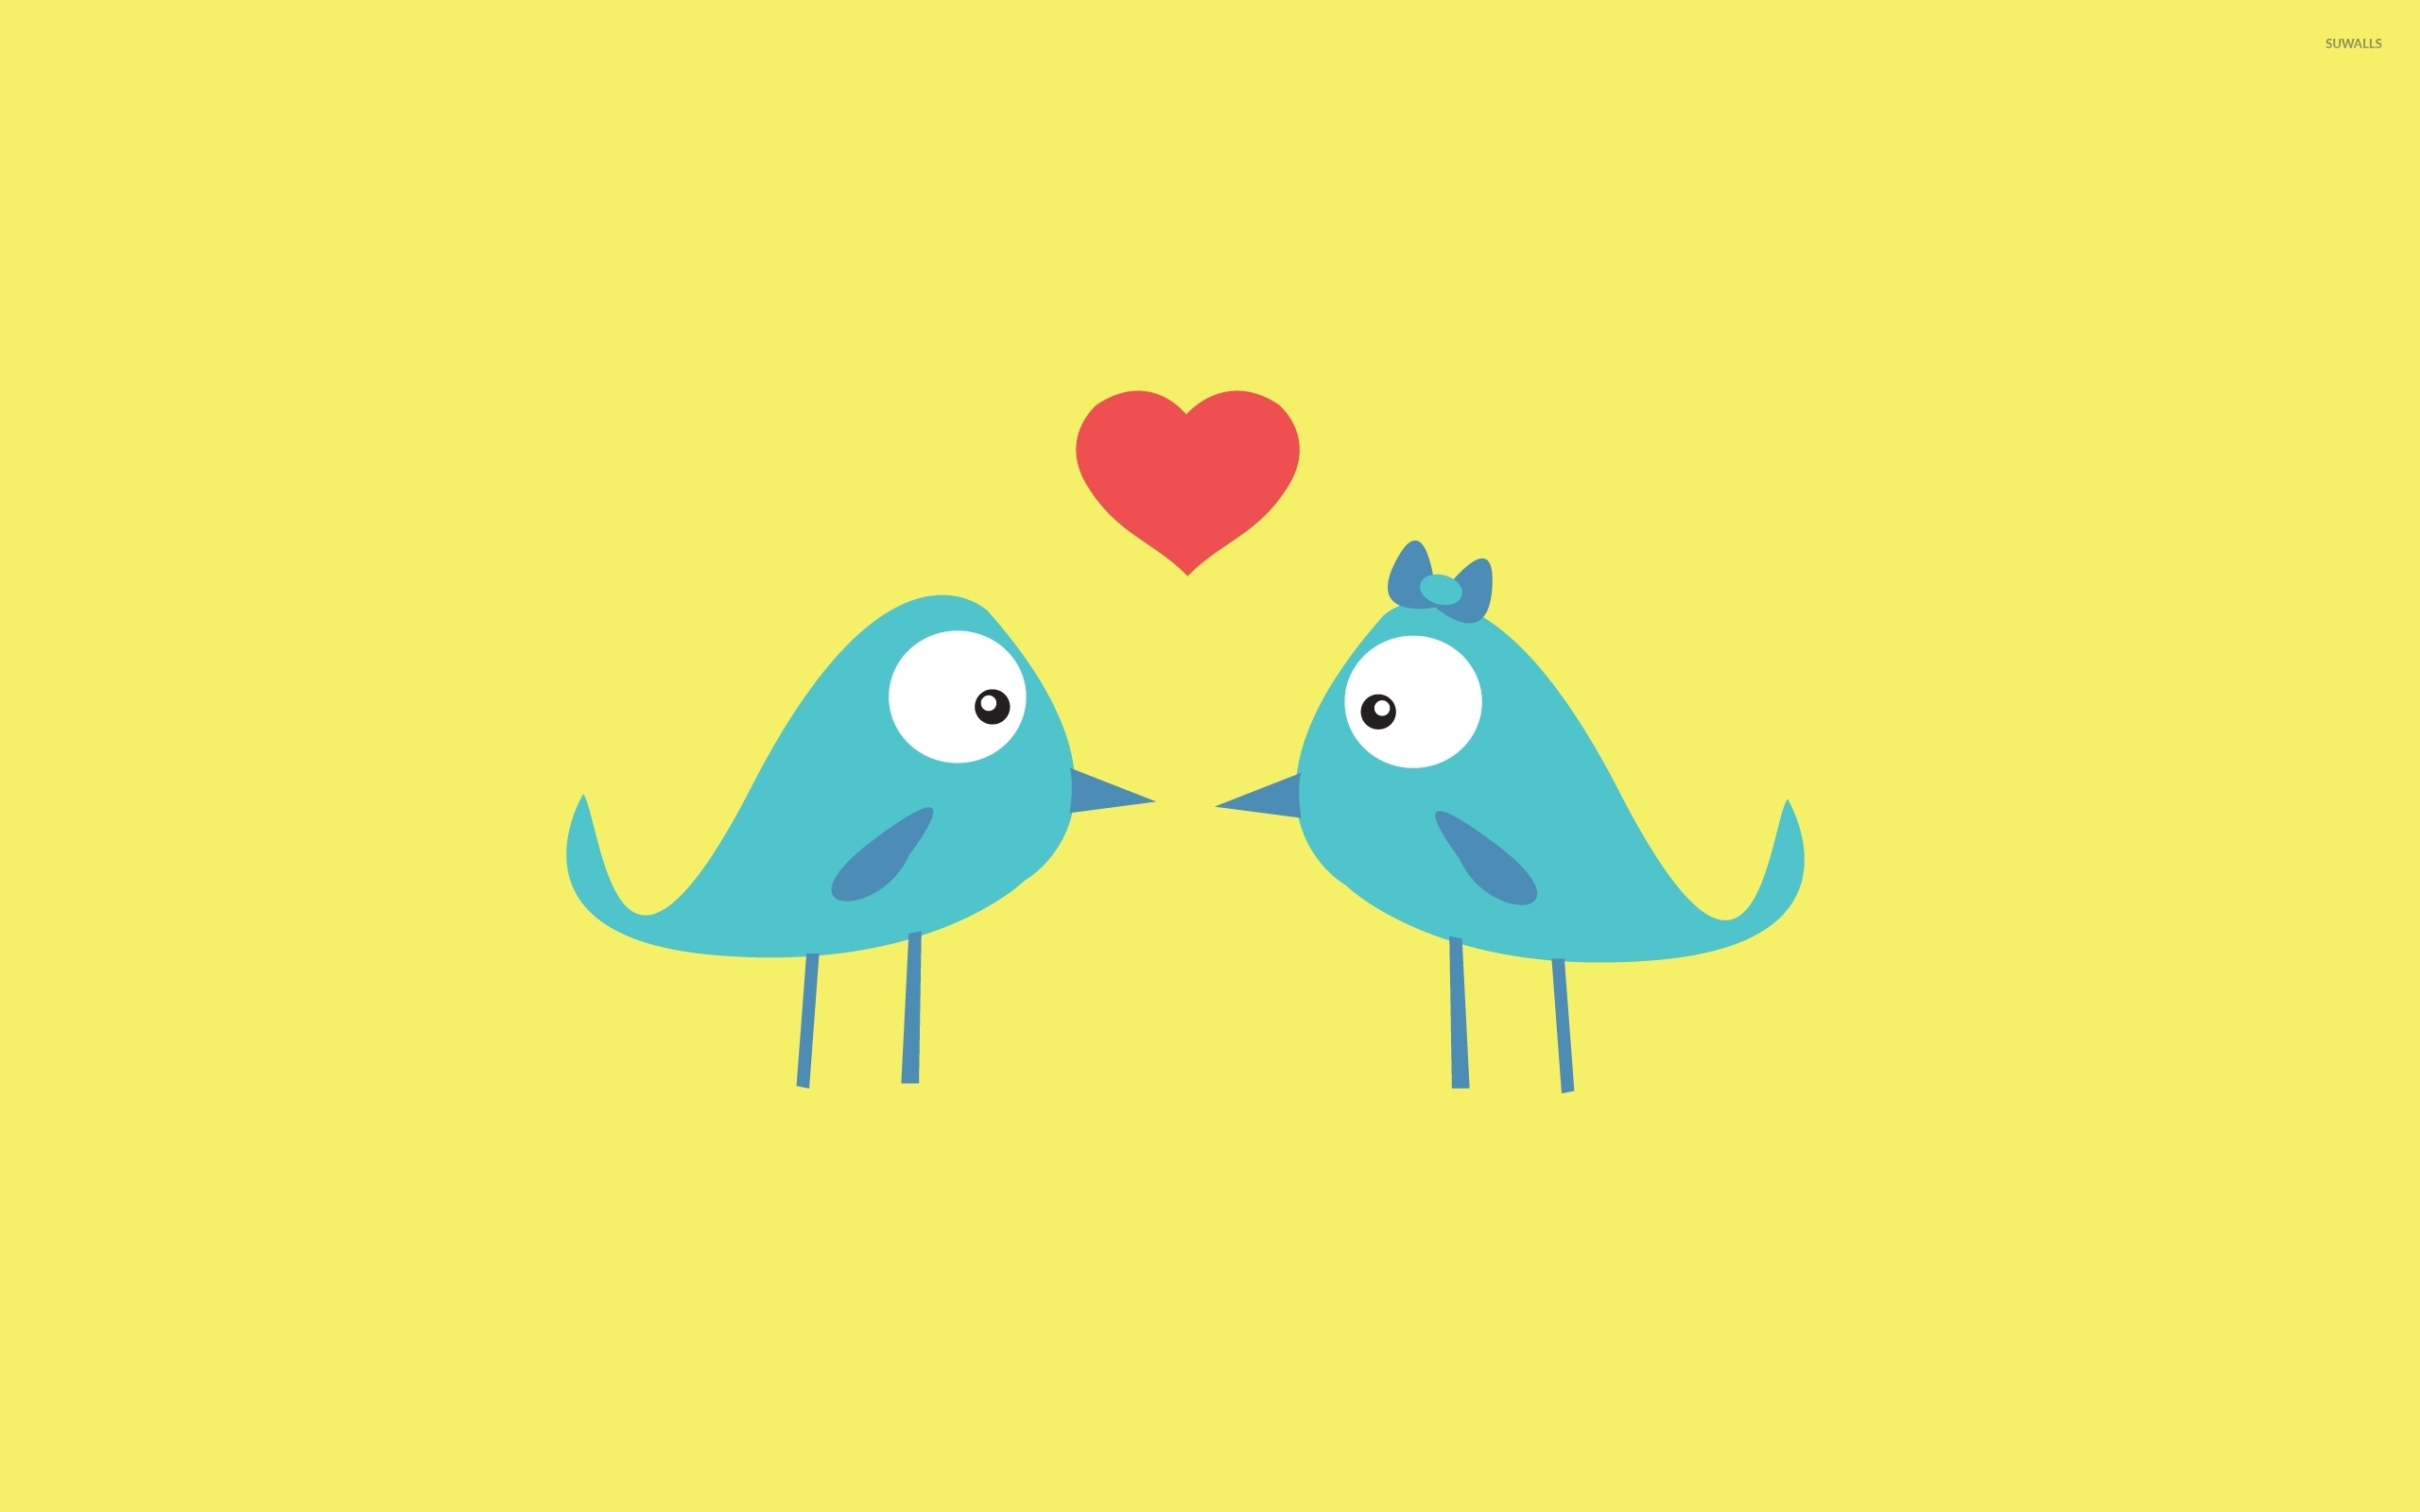 Love Wallpaper Vector : Blue bird love wallpaper - Vector wallpapers - #43152